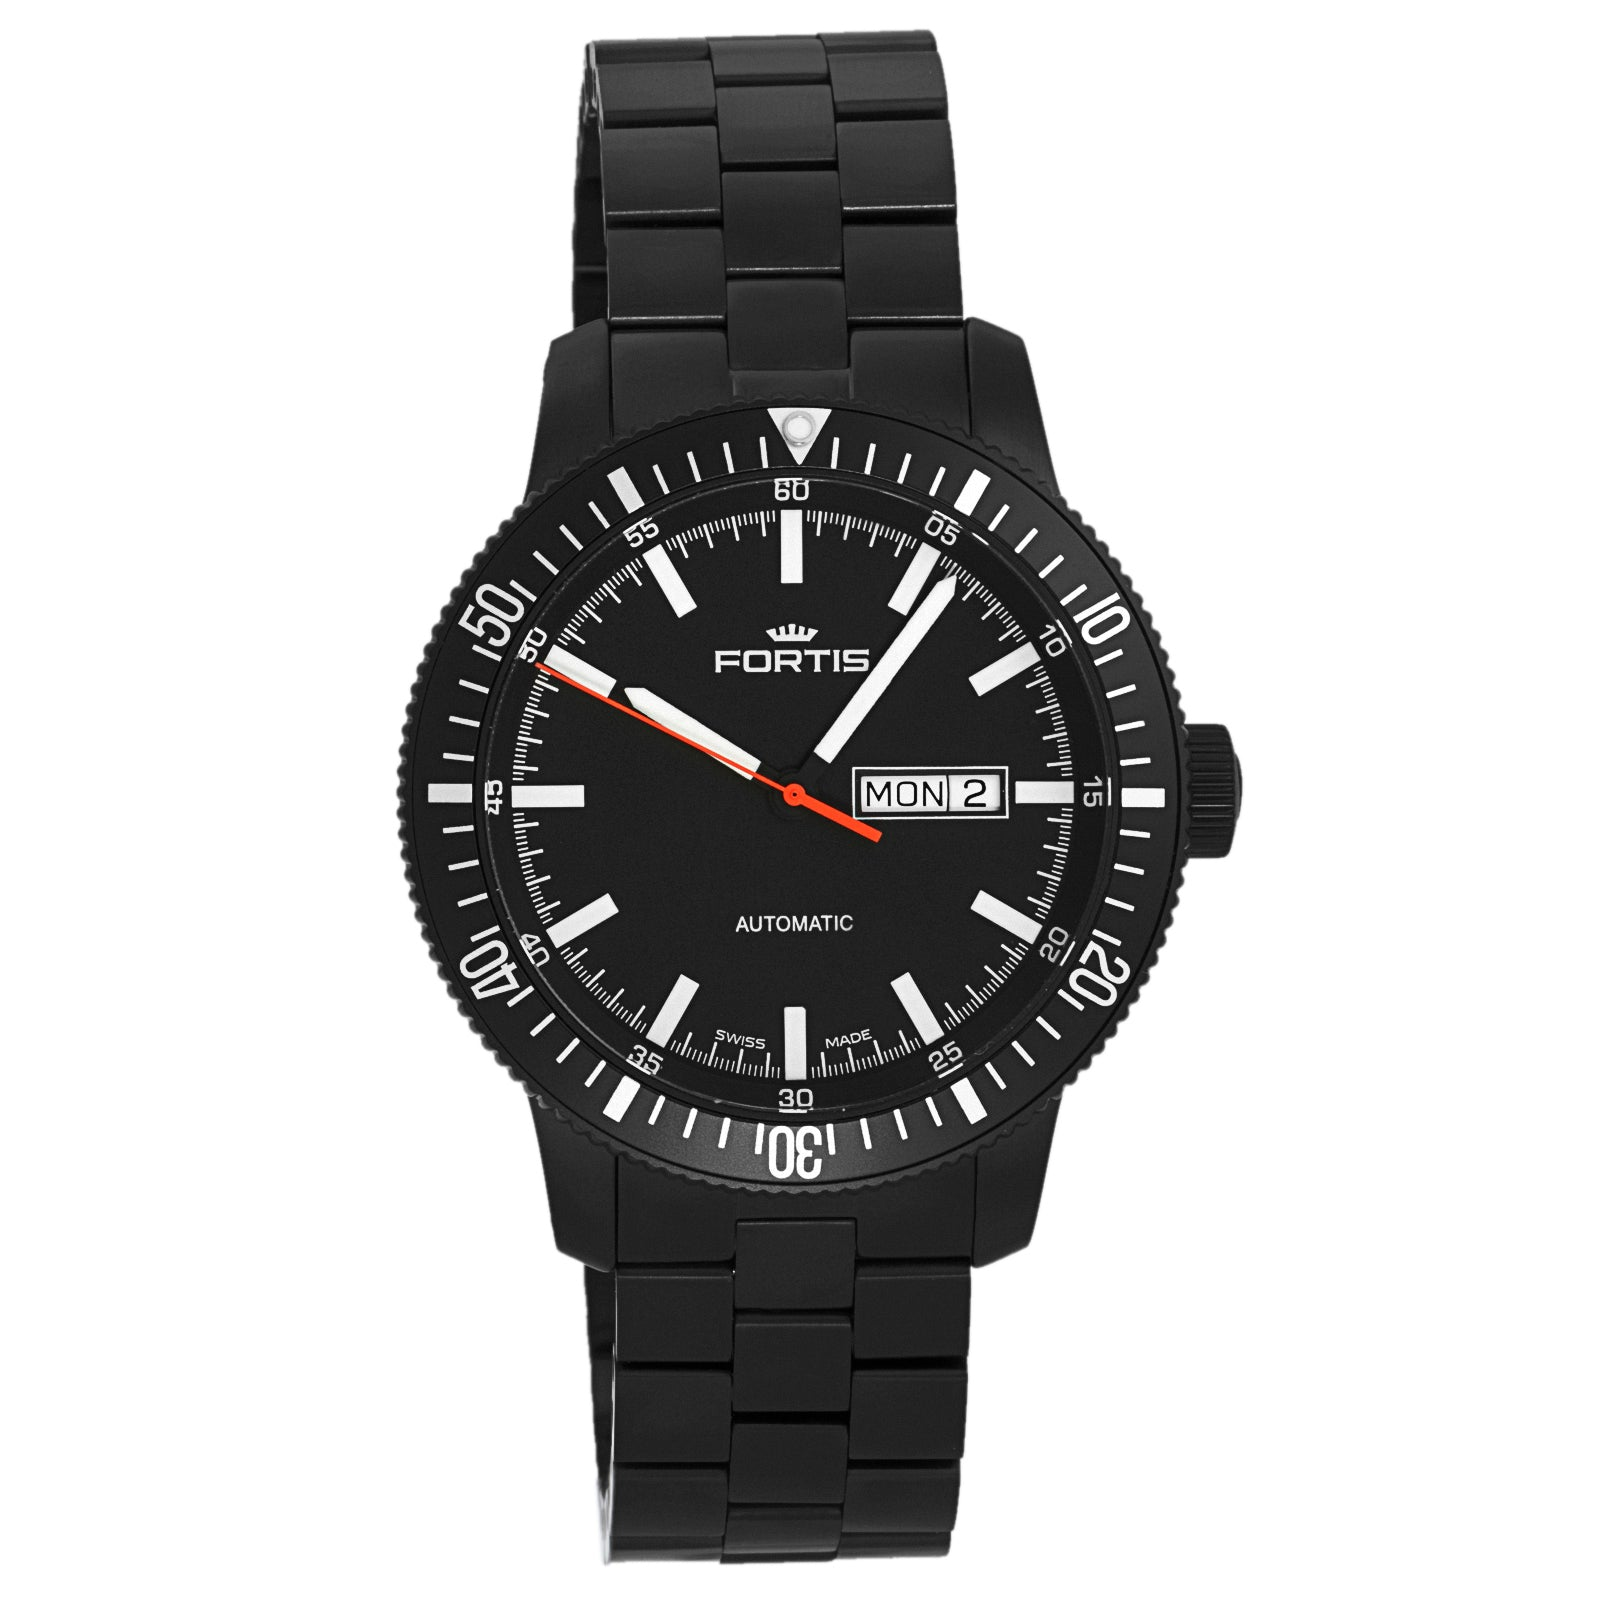 Fortis B-42 Monolith Automatic Mens Watch 647.18.31.M